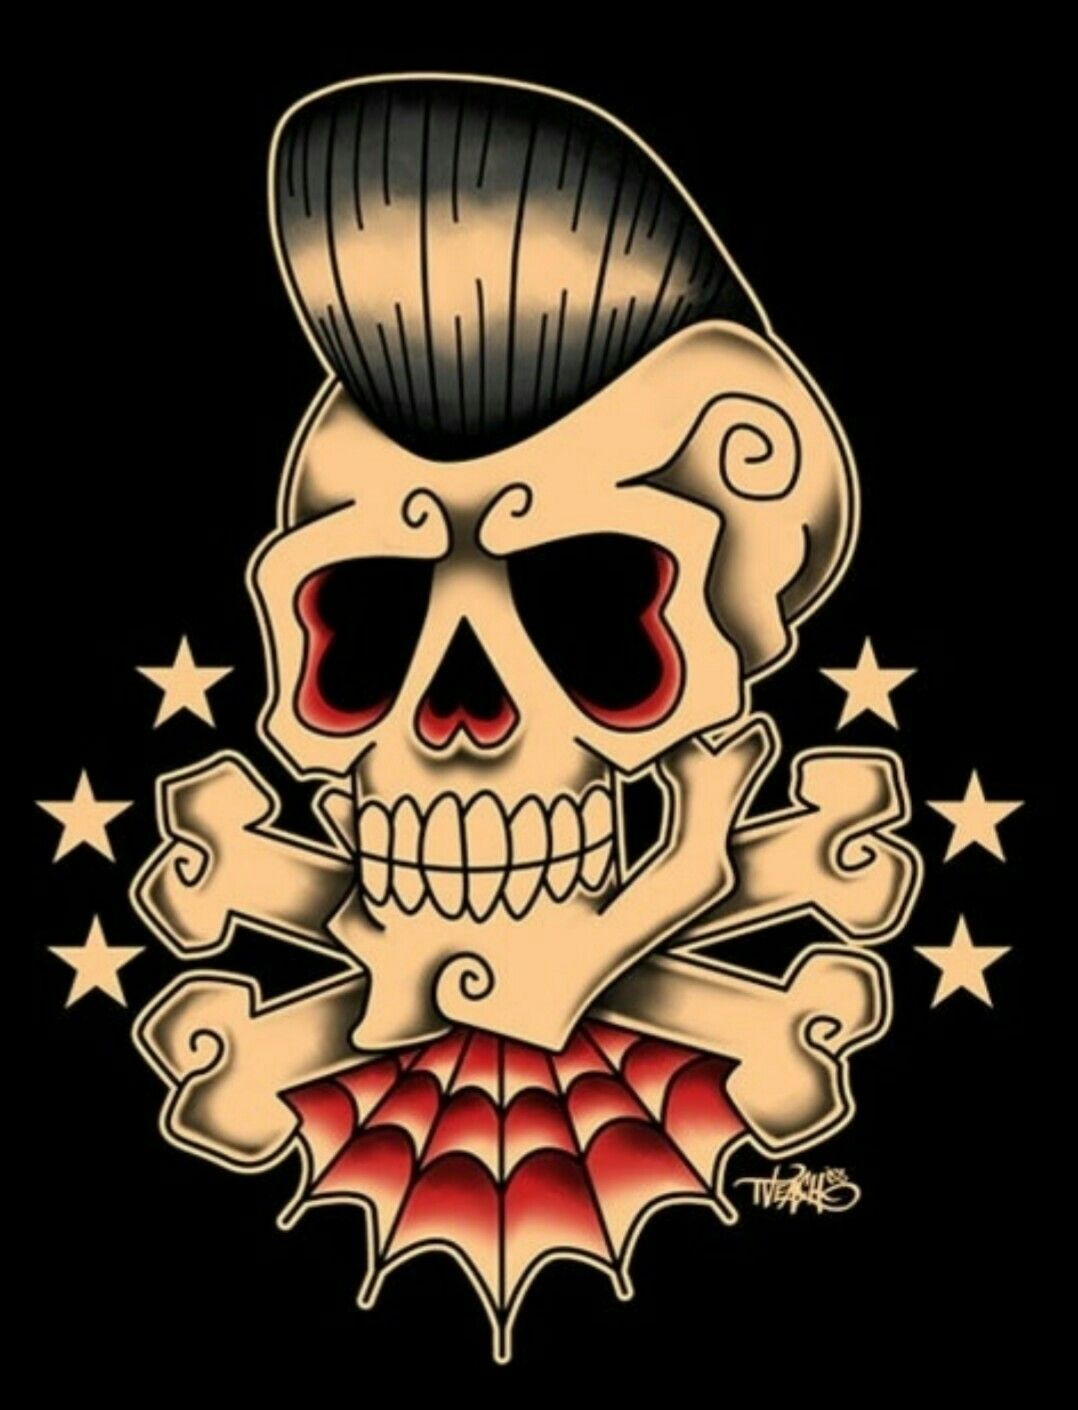 Rockabilly Barber Tattoo (concept) - Logo is crucial for brand and merchandise…